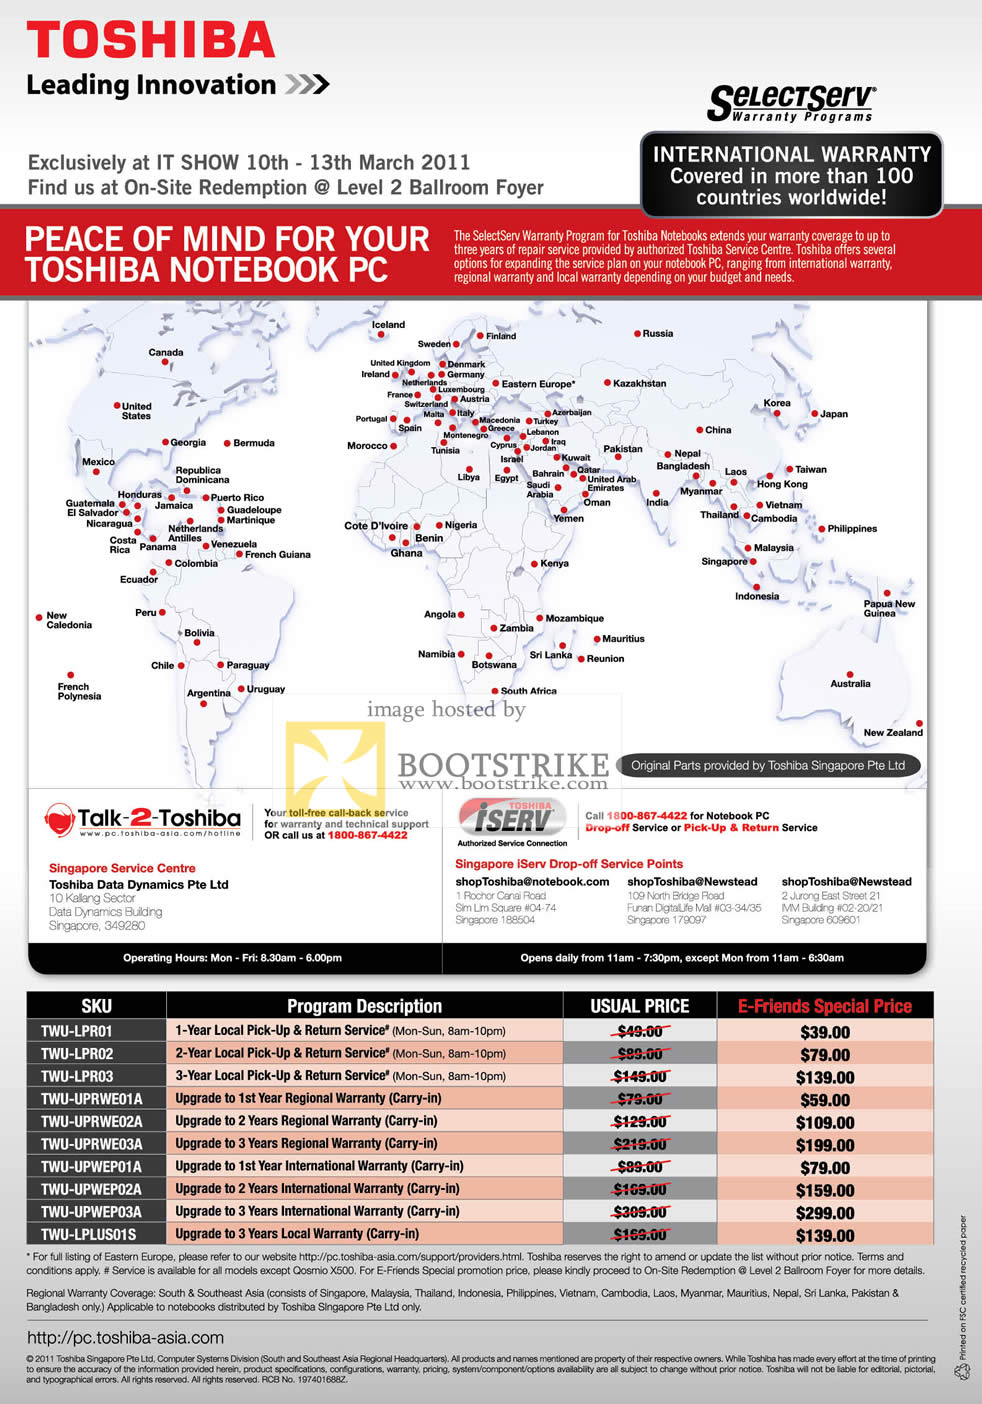 IT Show 2011 price list image brochure of Toshiba SelectServ International Regional Warranty Upgrade Options E-Friends